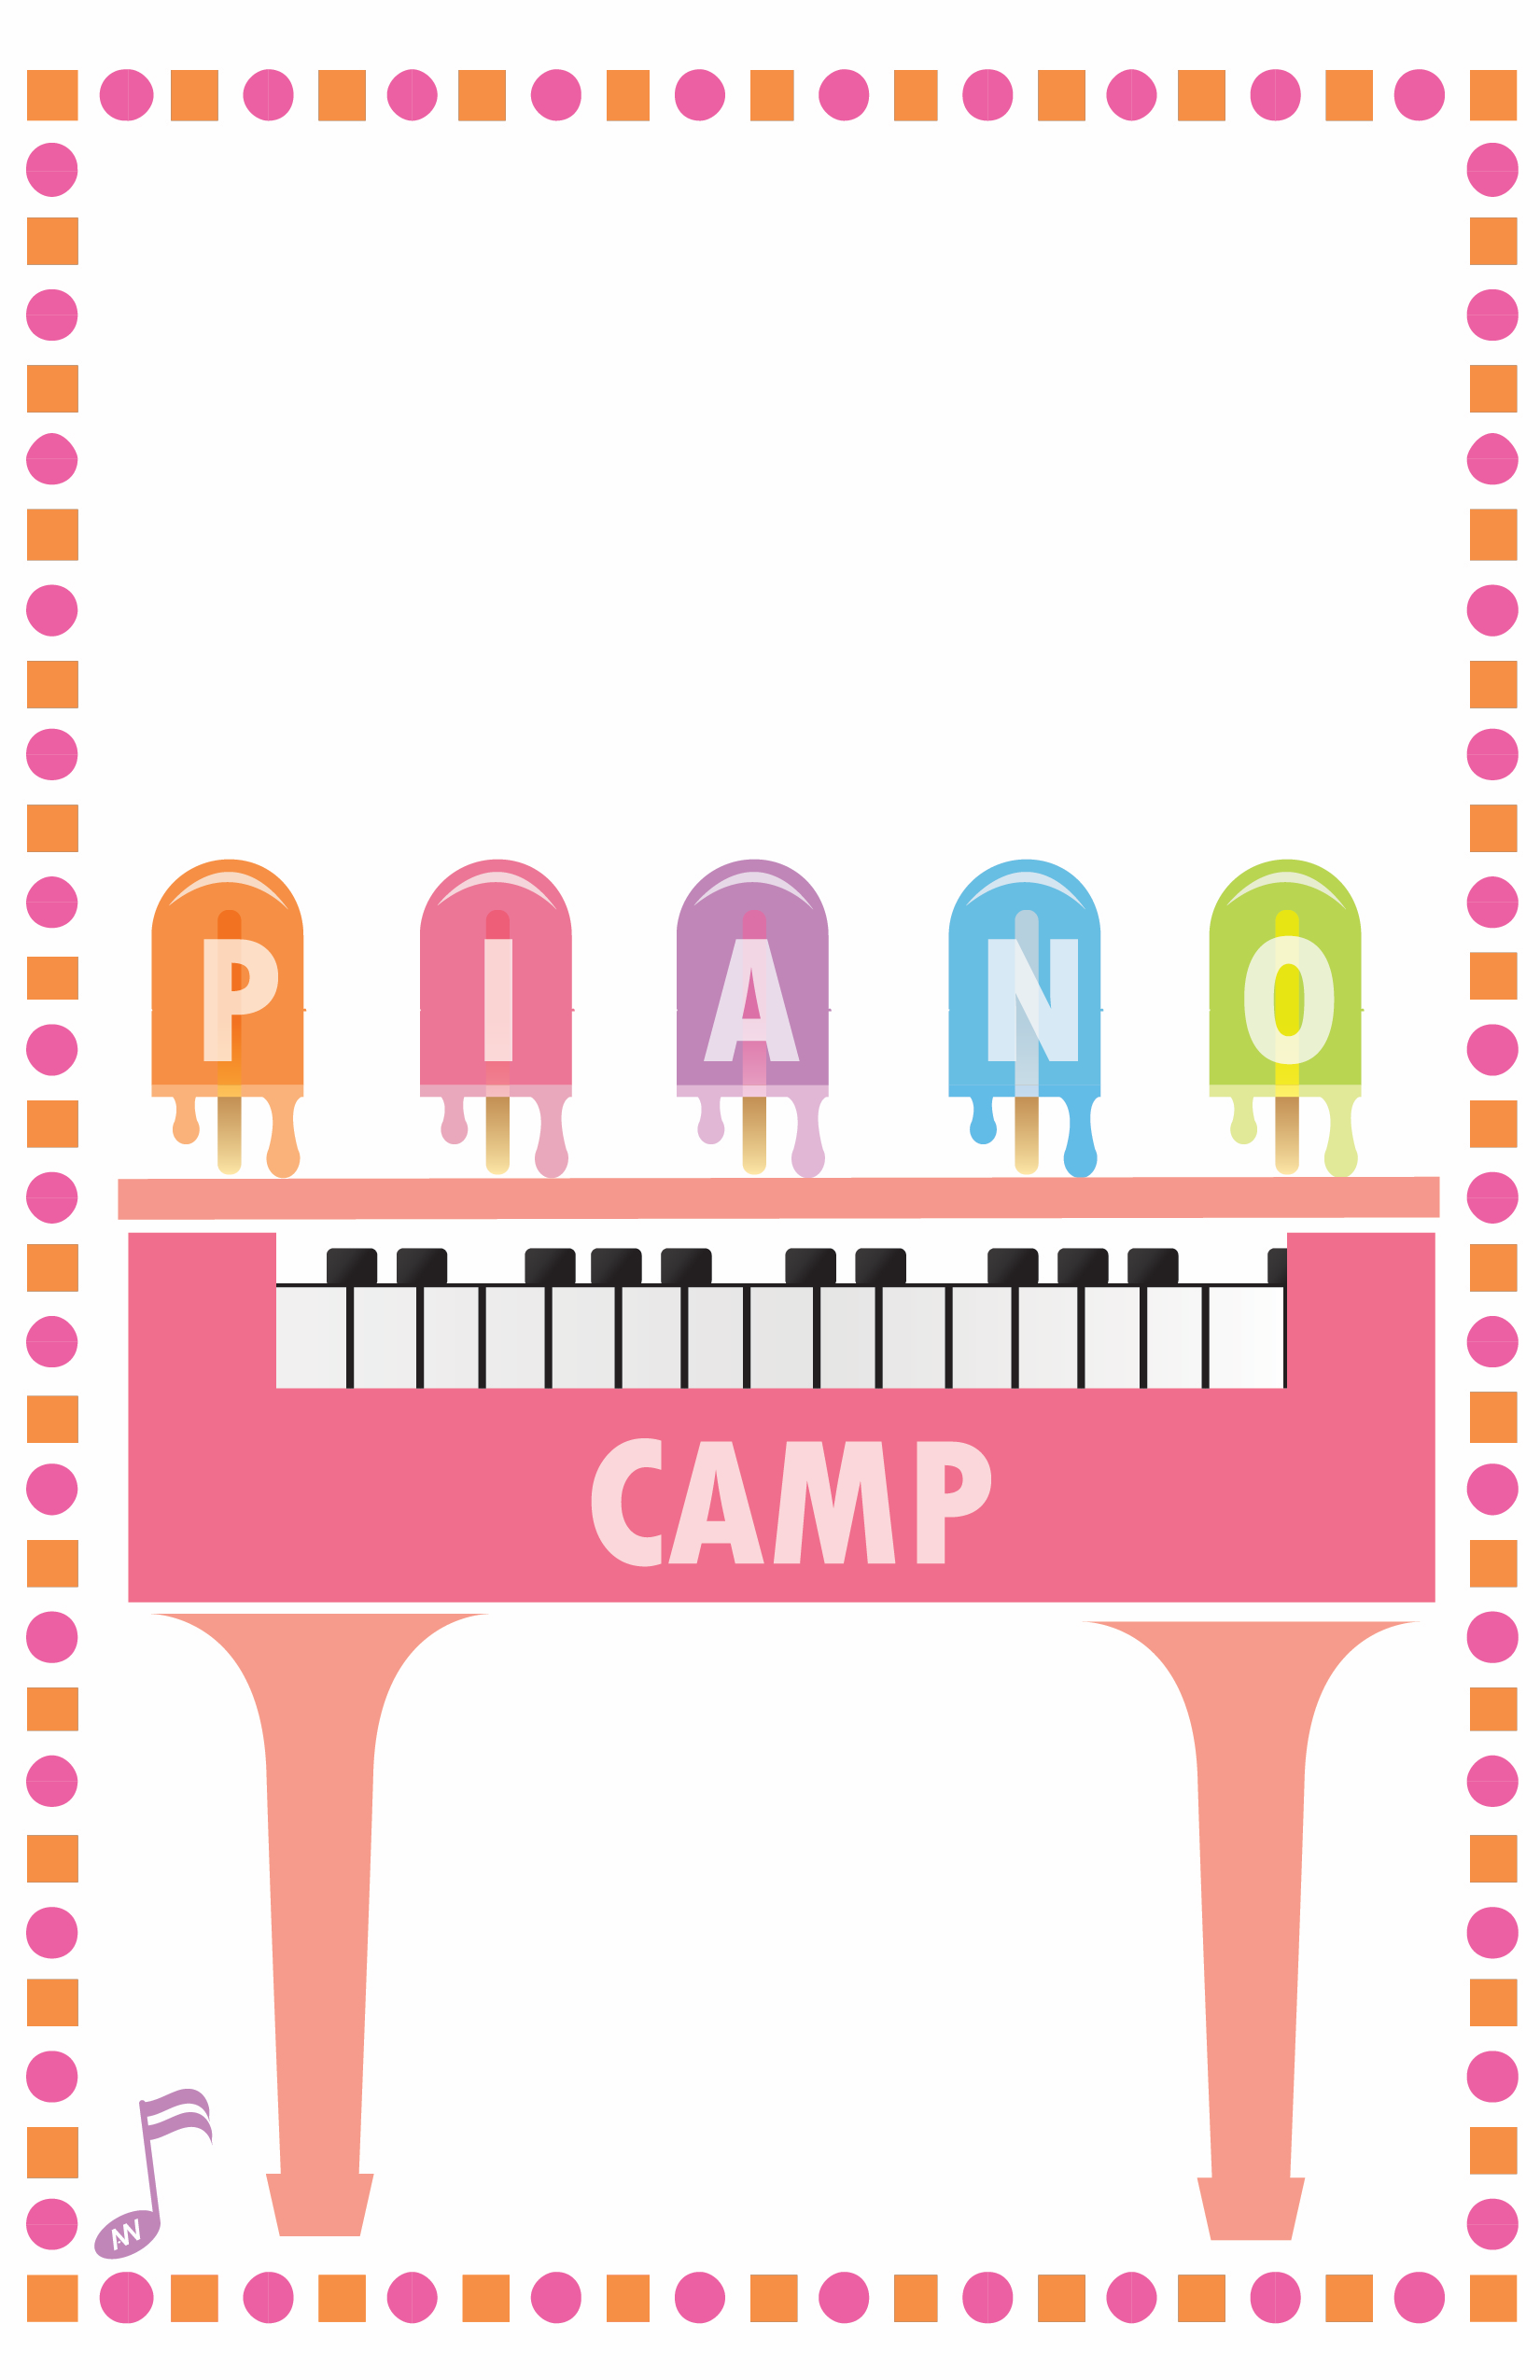 popsicle-piano-camp-01